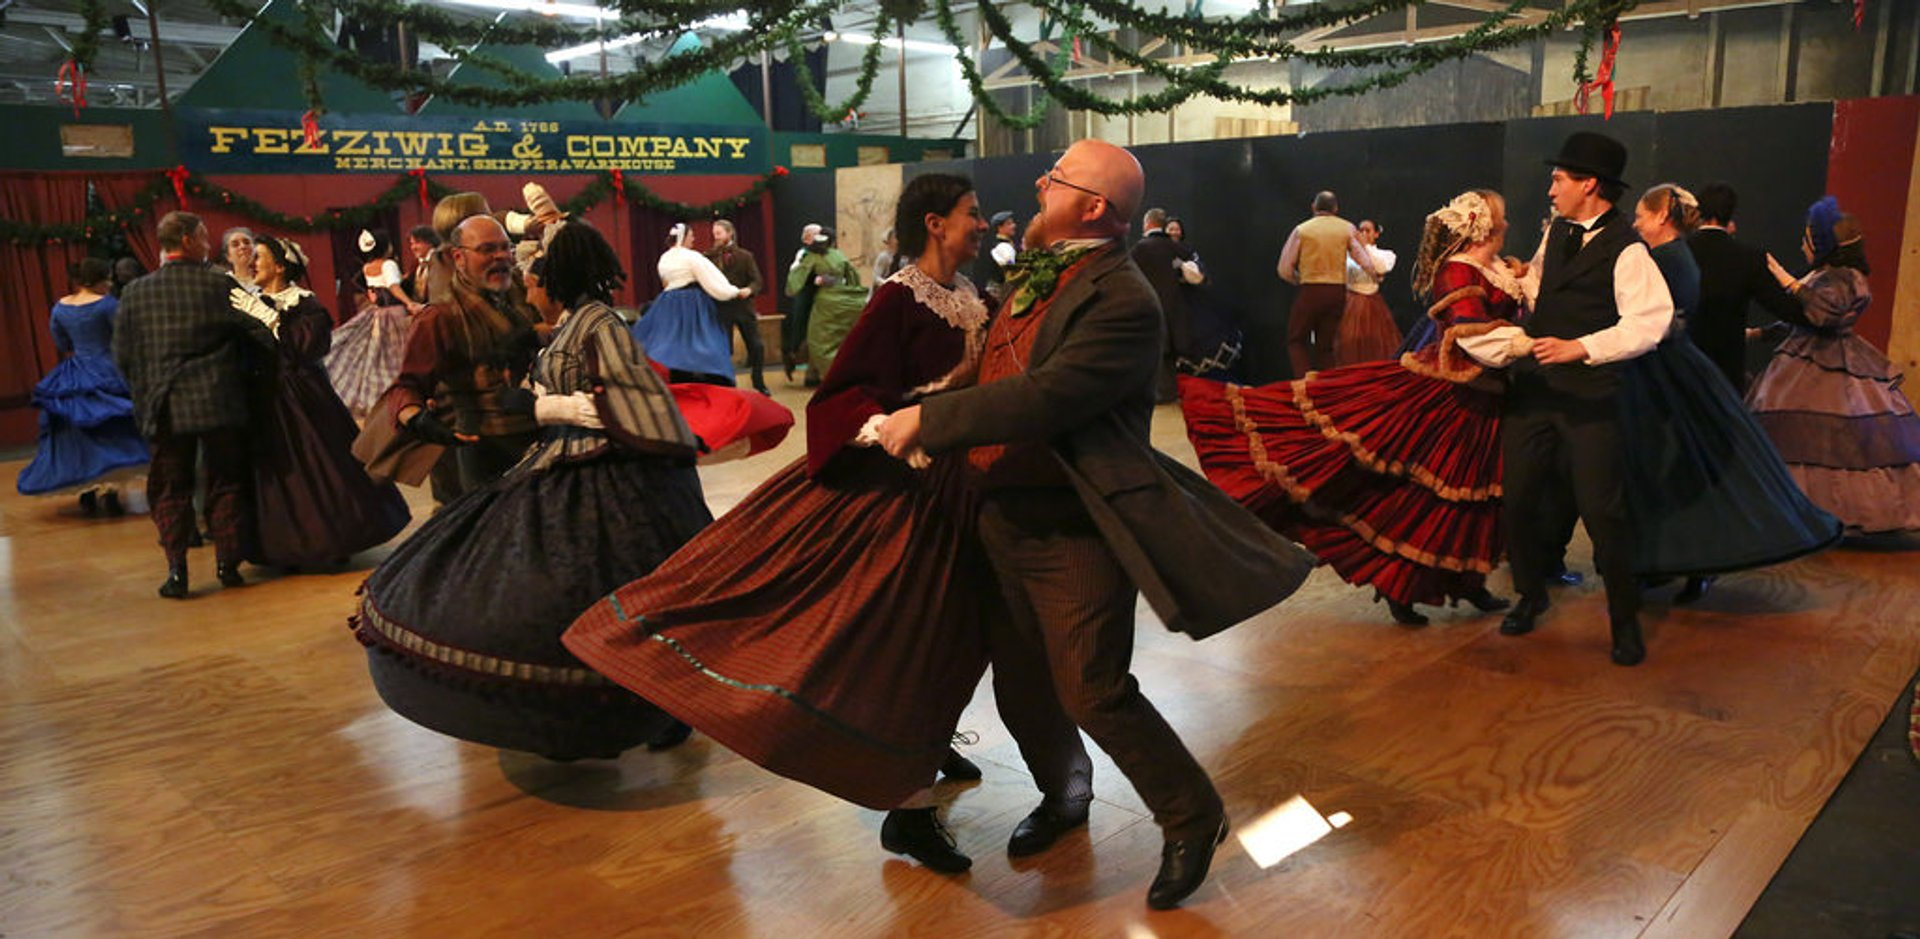 Best time for Great Dickens Christmas Fair